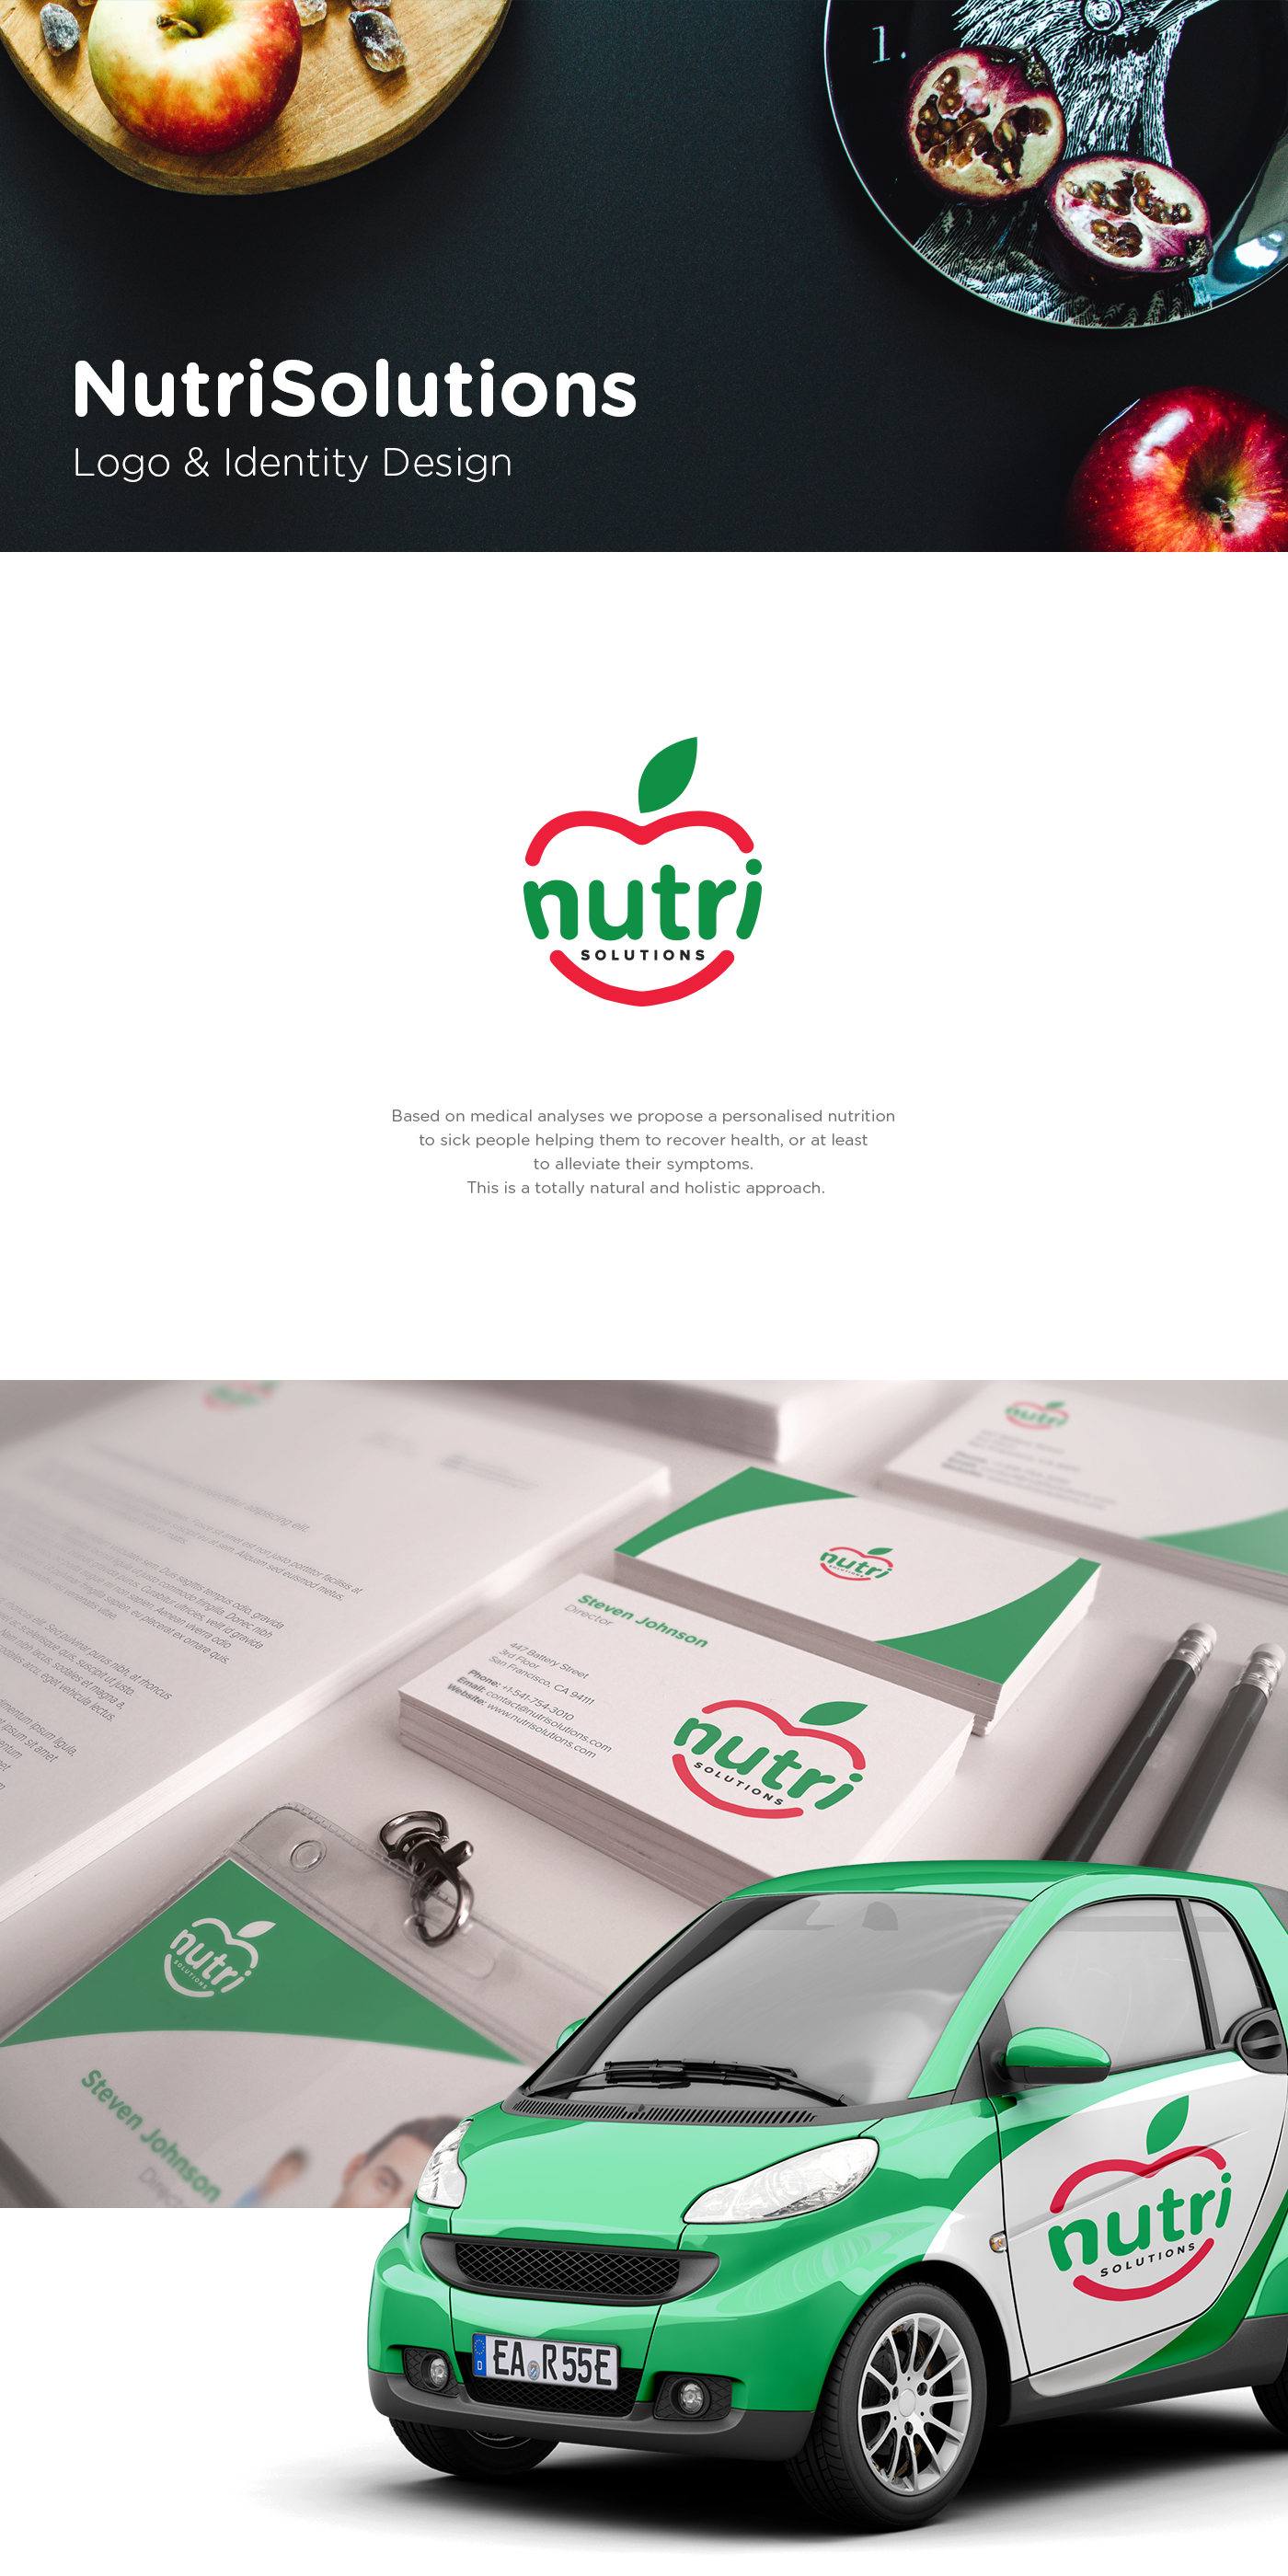 Create a logo for an innovative nutritional approach aiming the recovery of health in sick people